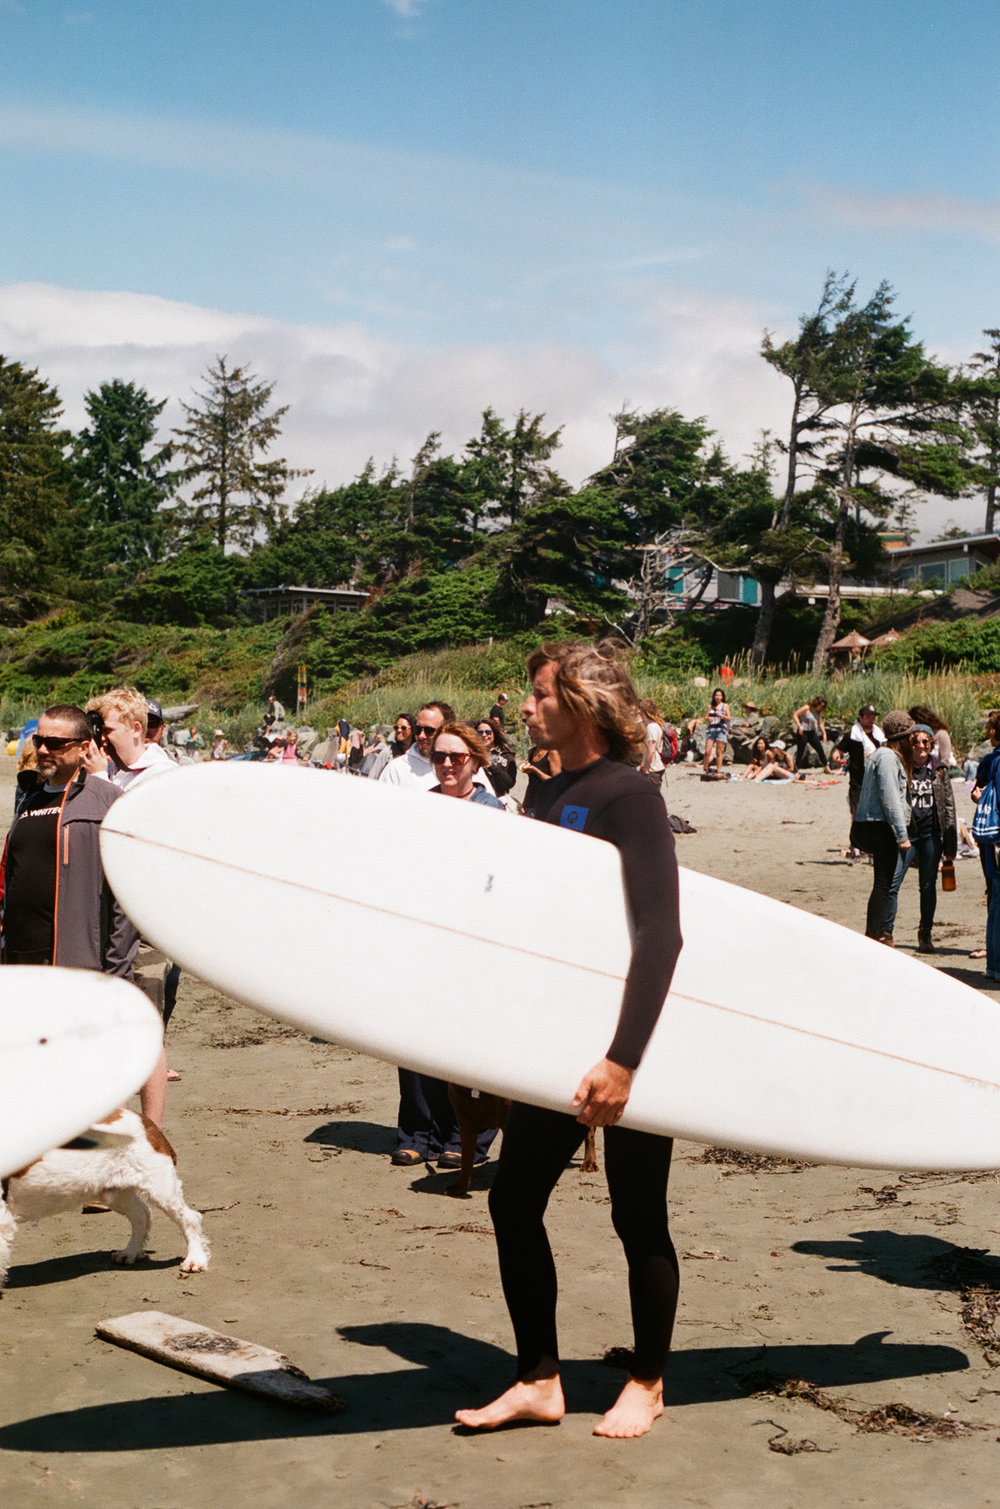 STAYWILD_VANS_TOFINO_PHOTOS_91.JPG